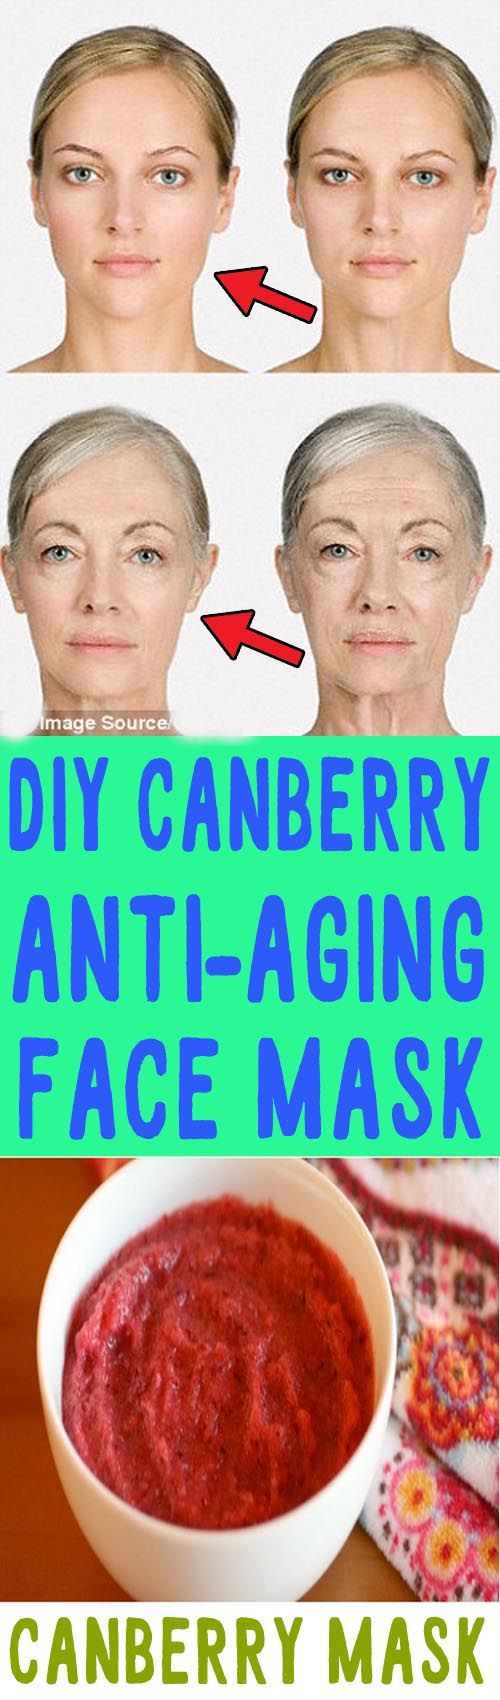 Anti aging home remedies anti aging herbs - Home remedy for anti aging face mask